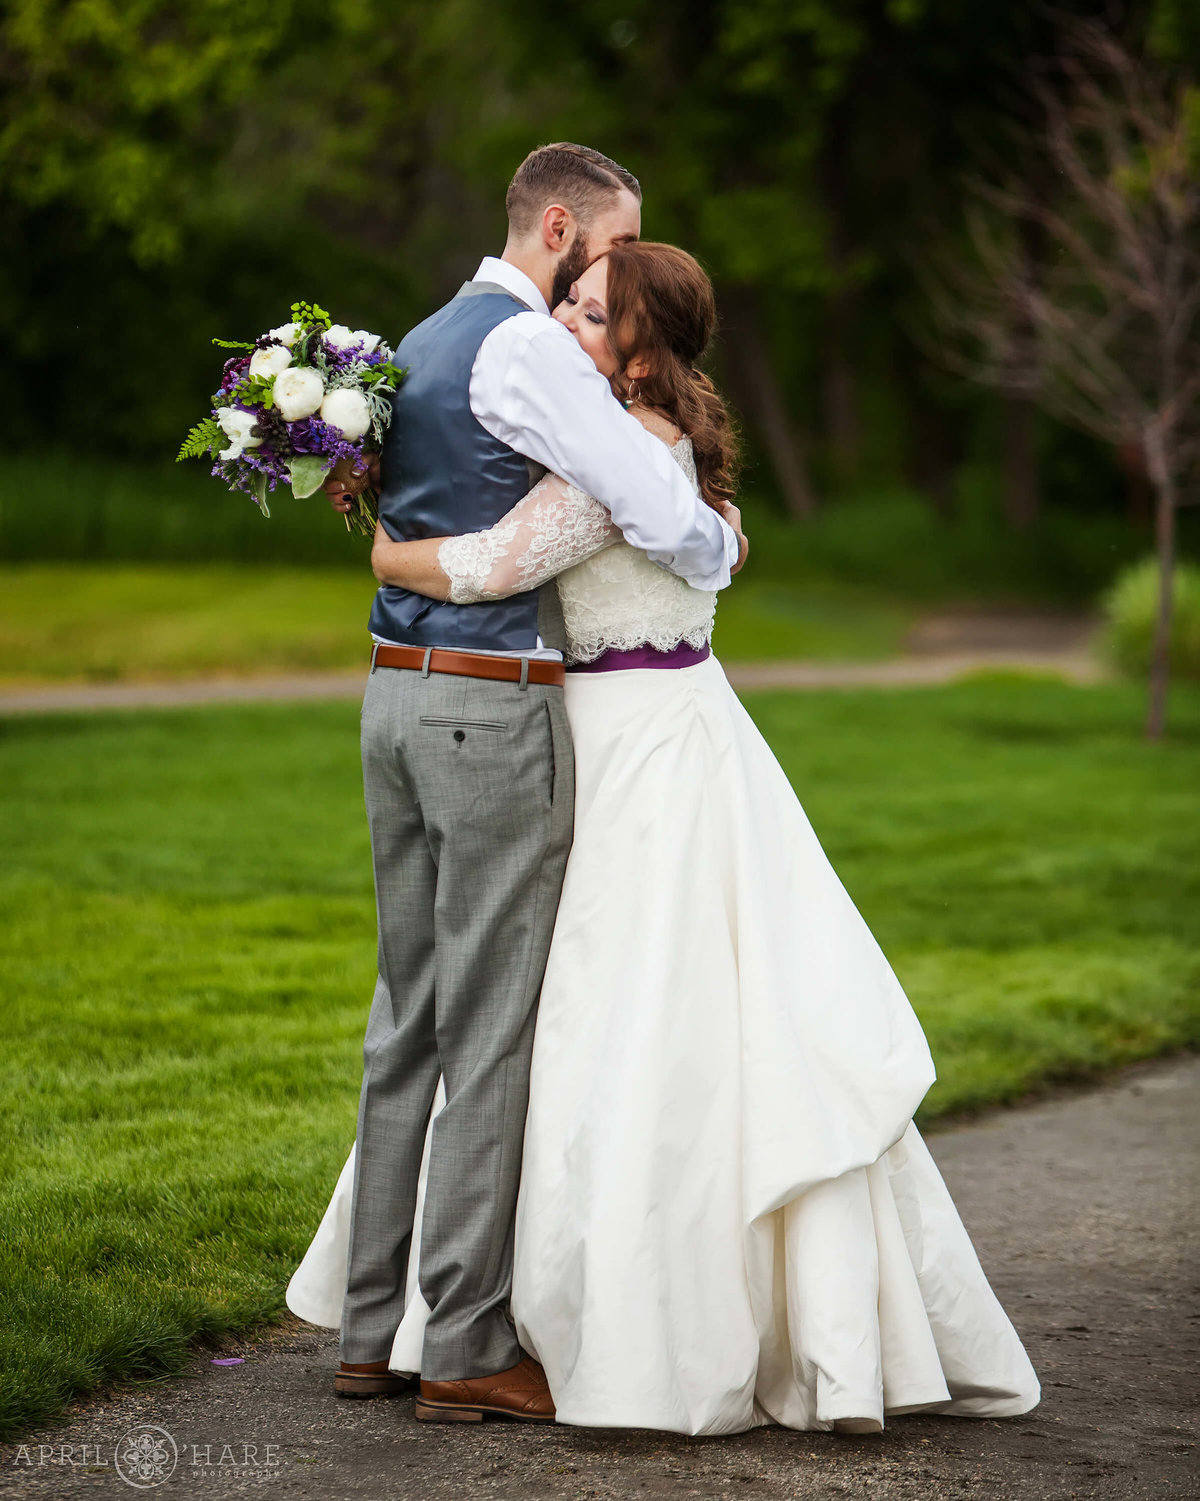 Sweet hug moment after wedding ceremony  at Chatfield Farms in Colorado